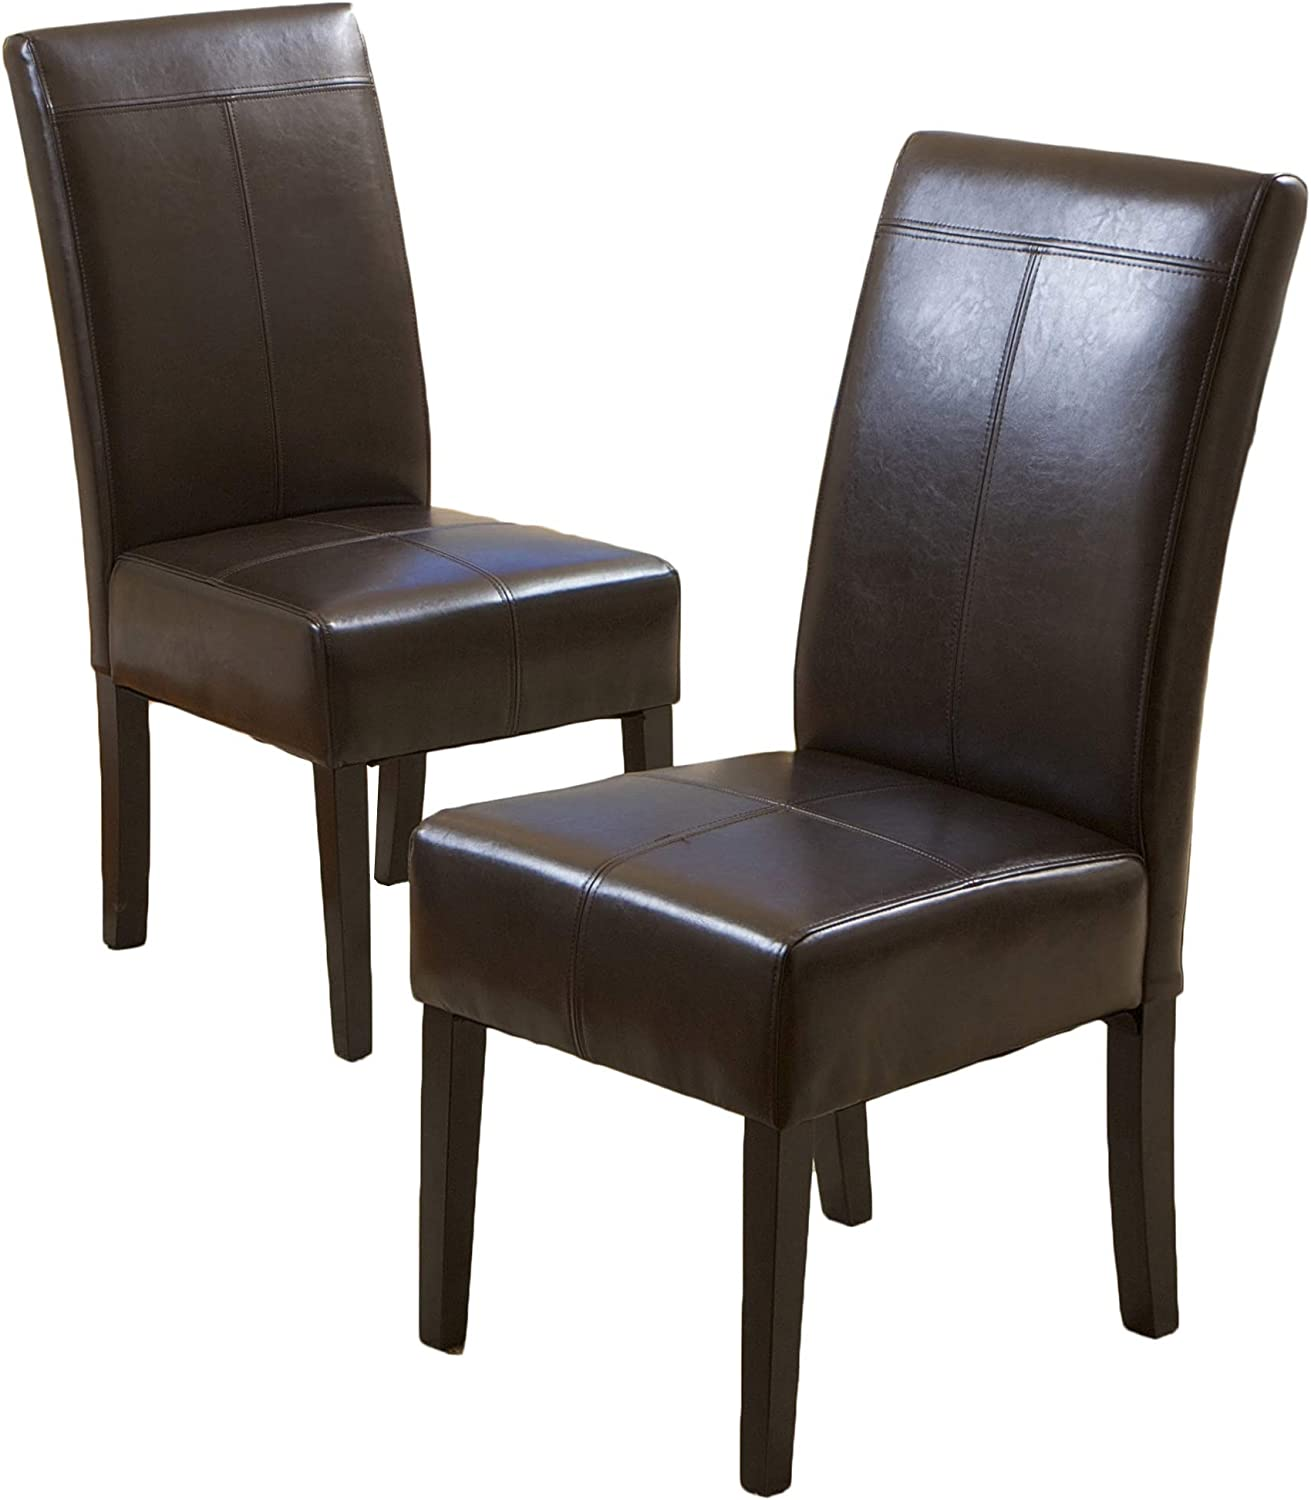 Best Selling Chocolate Brown T-Stitch Leather Dining Chair, 2-Pack Renewed